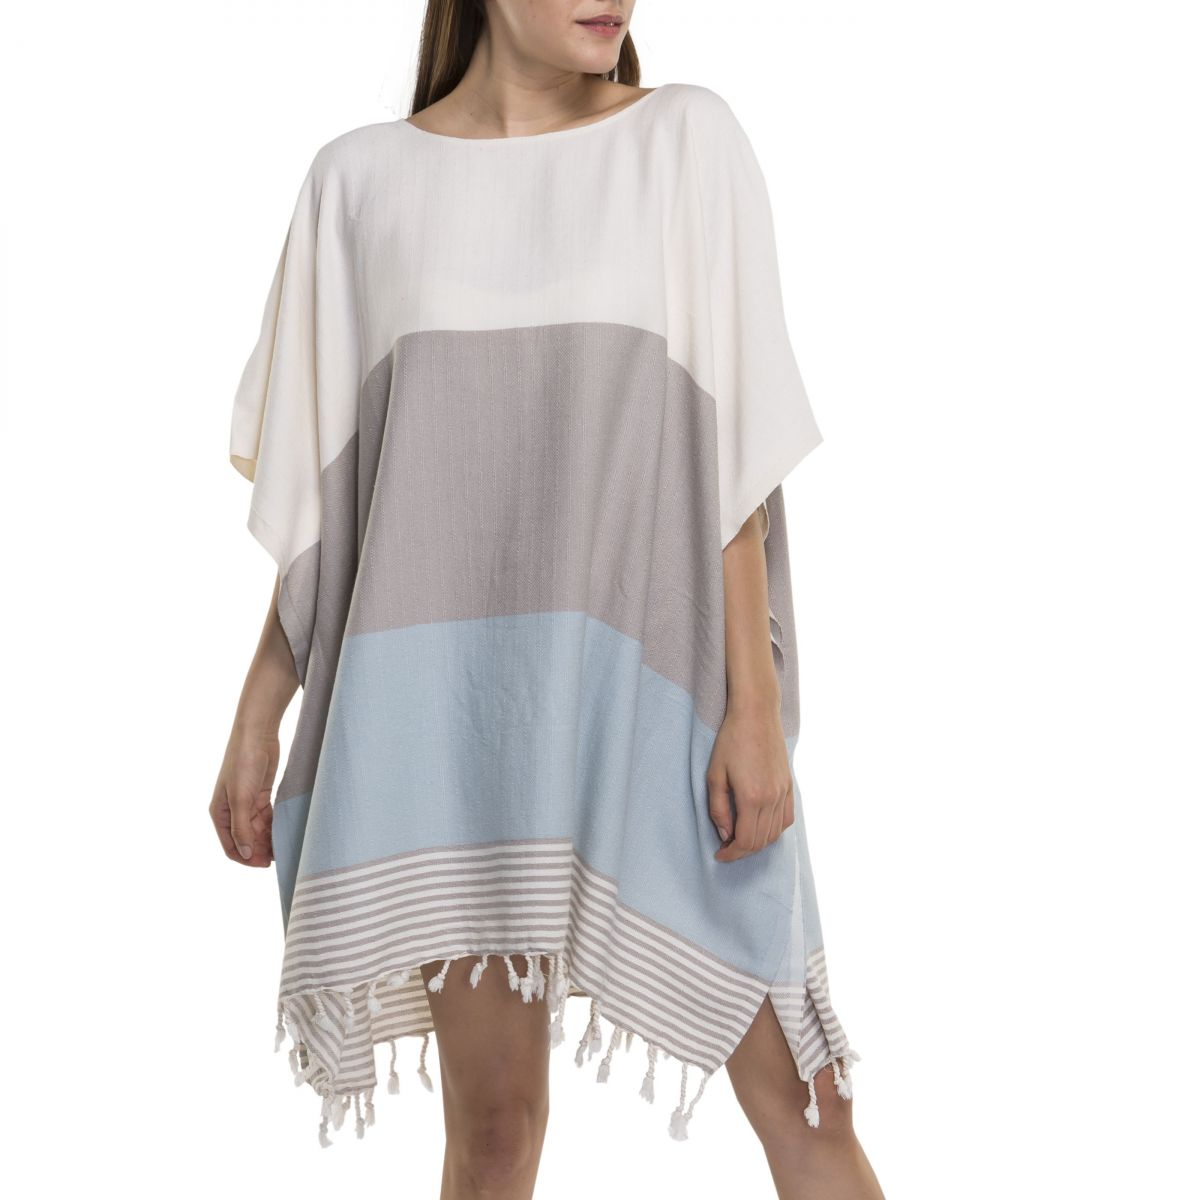 Tunic Twin Sultan - Taupe / Light Blue